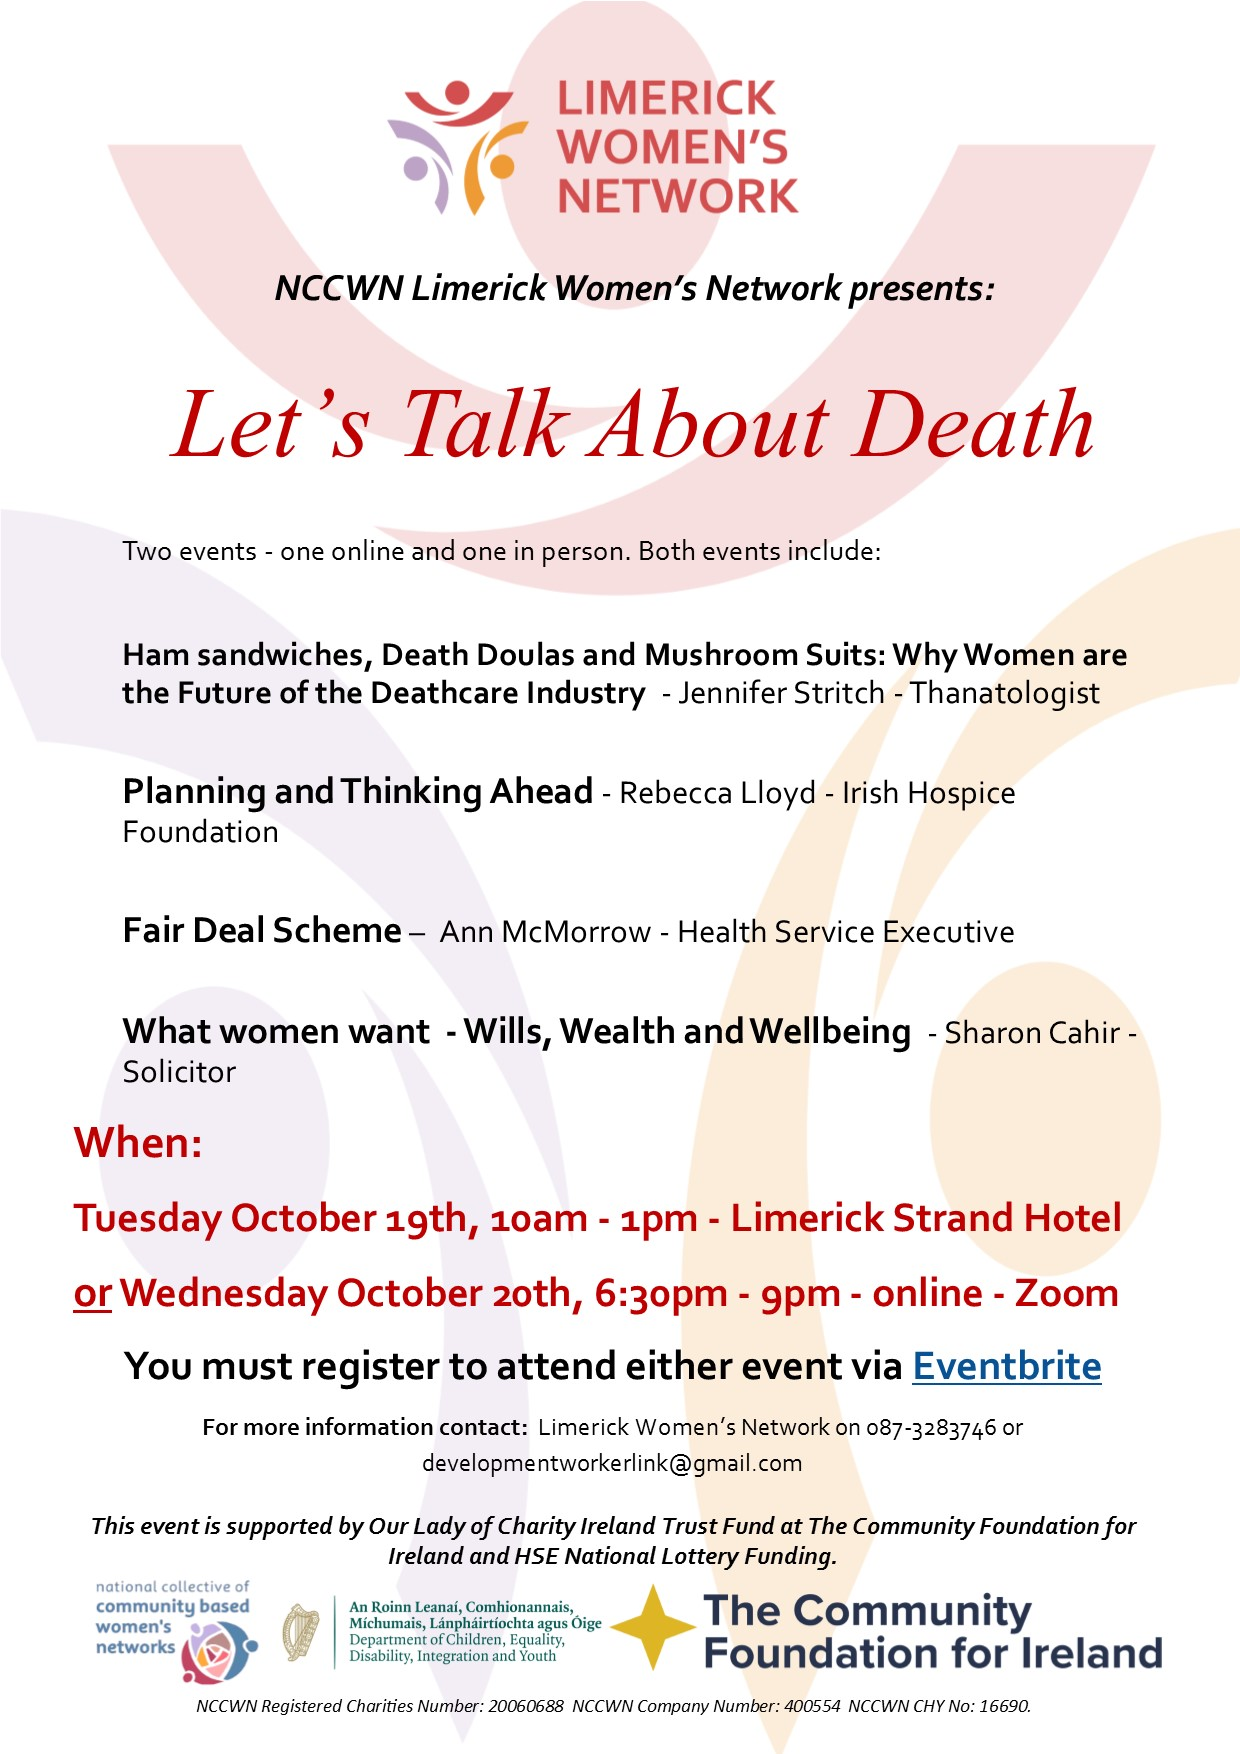 Lets Talk About Death Lets Talk About Death aims to demystify and normalise conversations about death and dying.